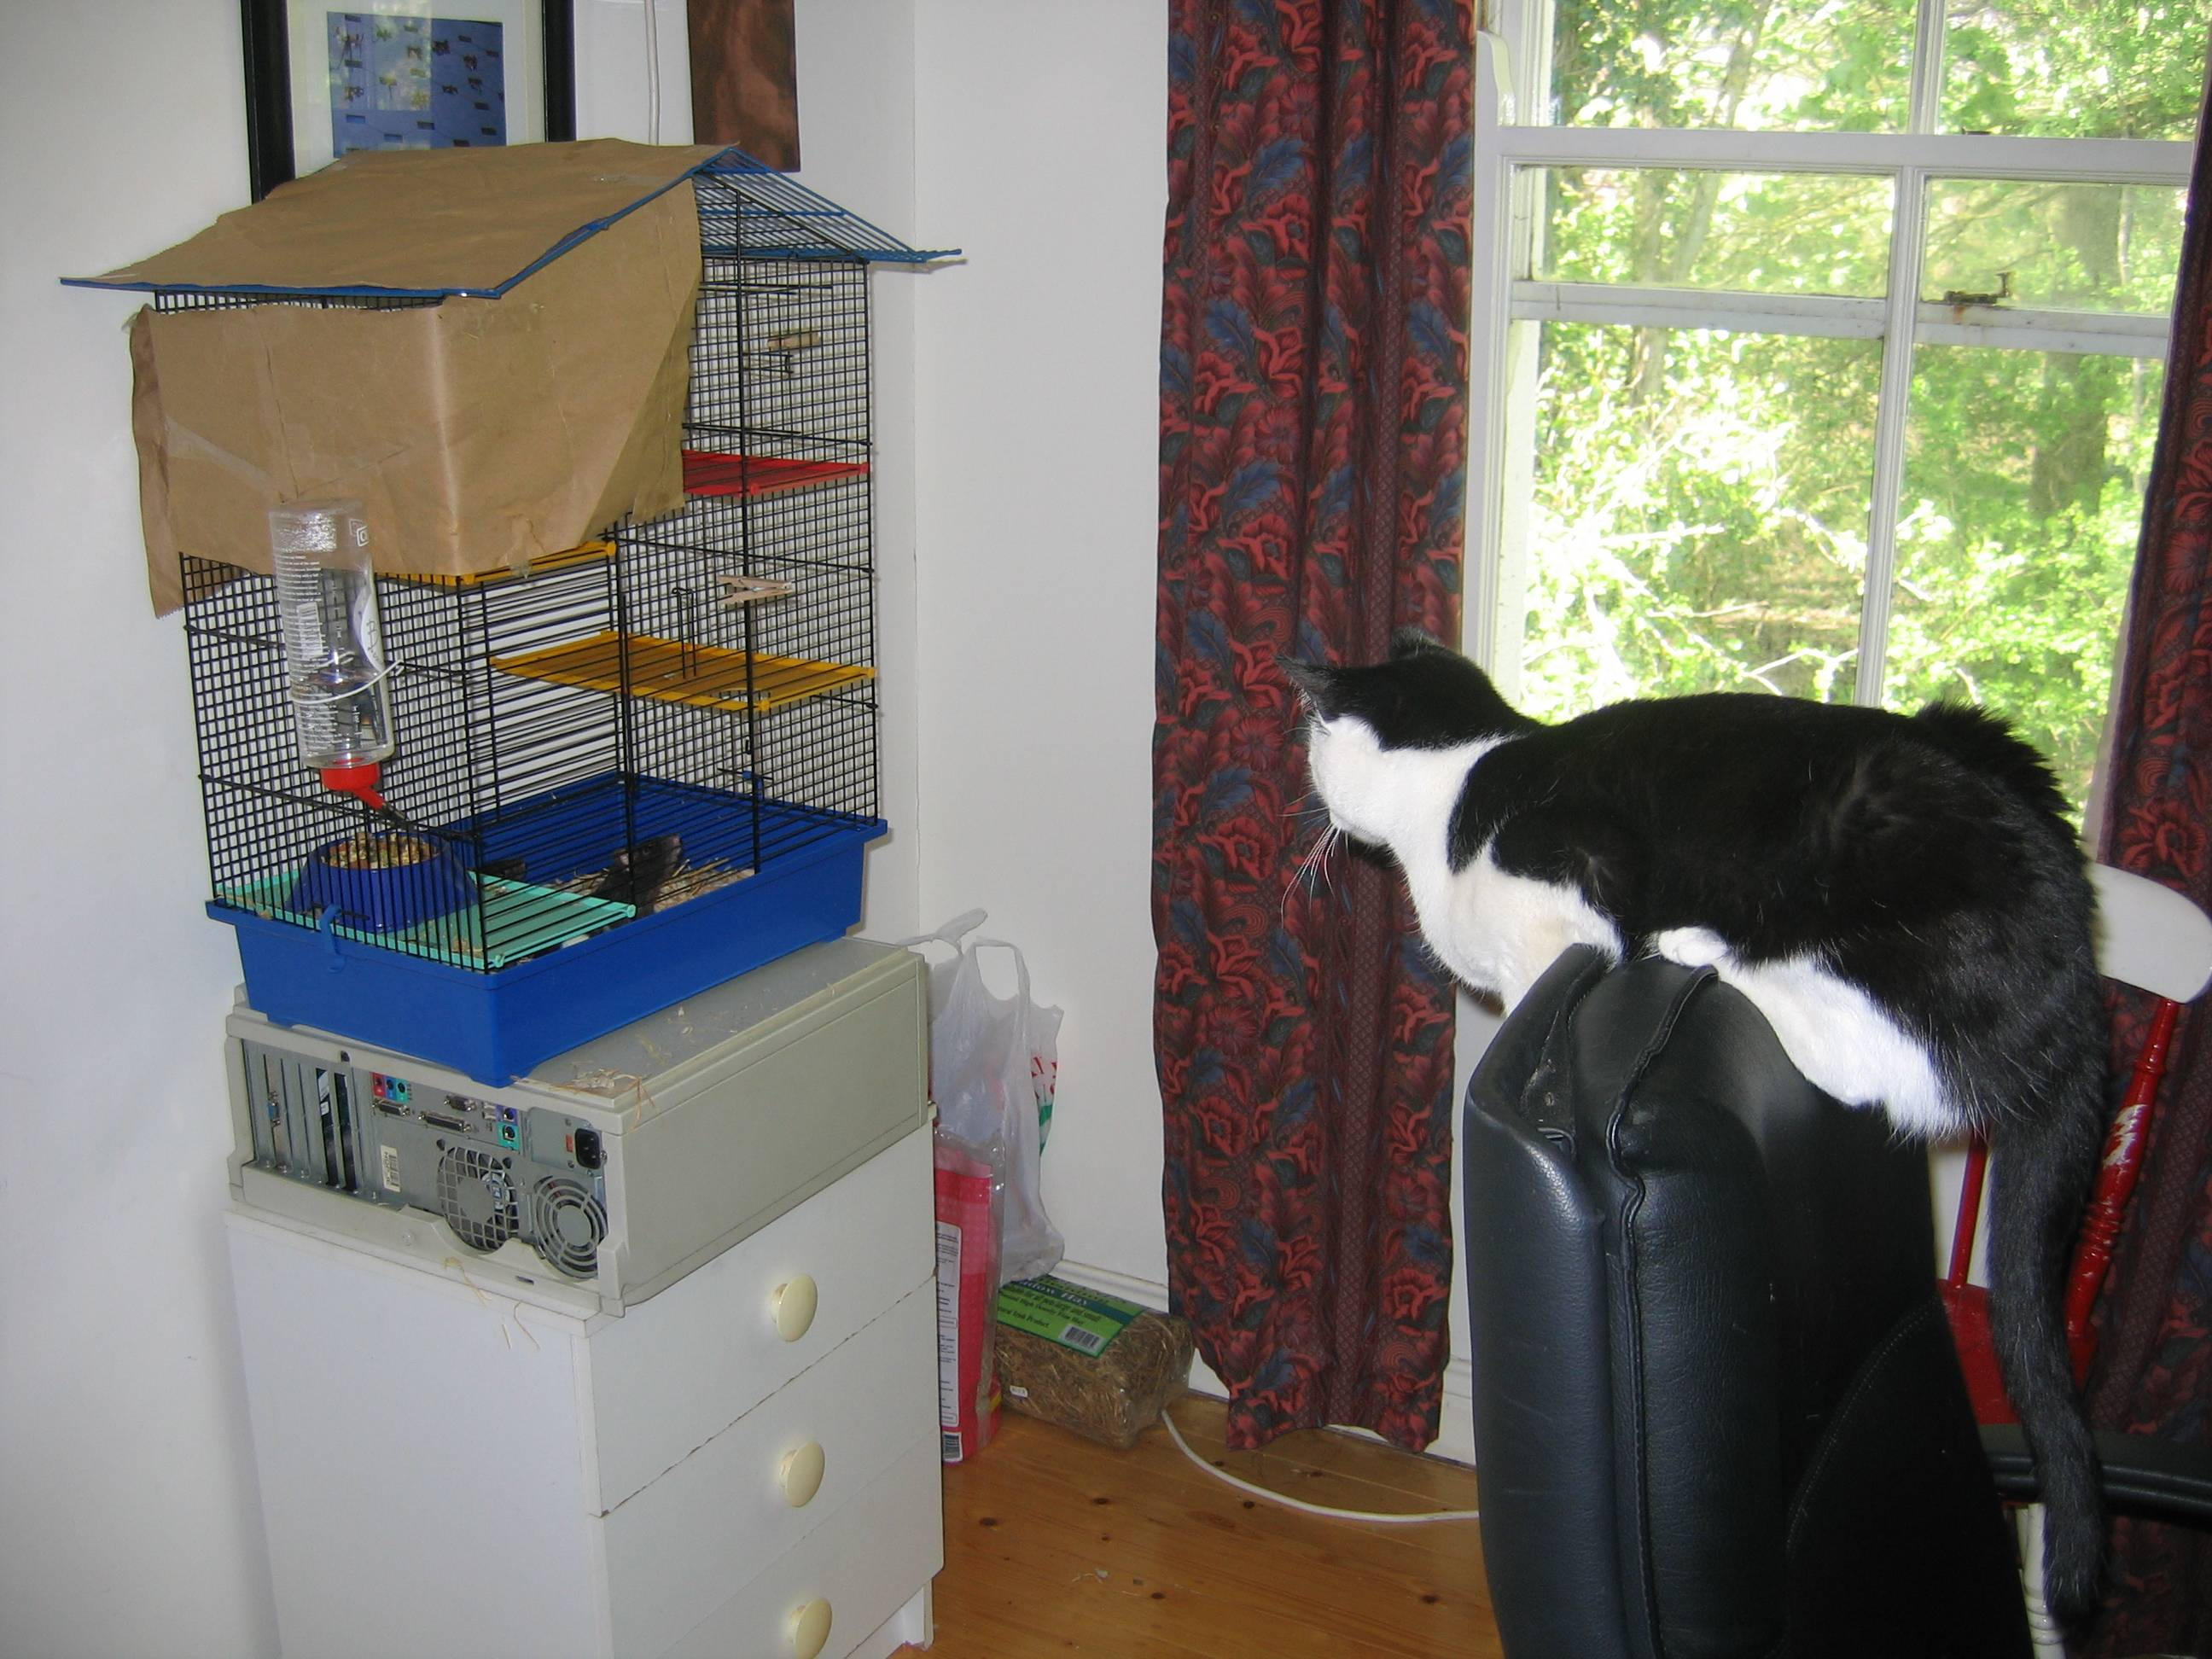 Jack watches the rats